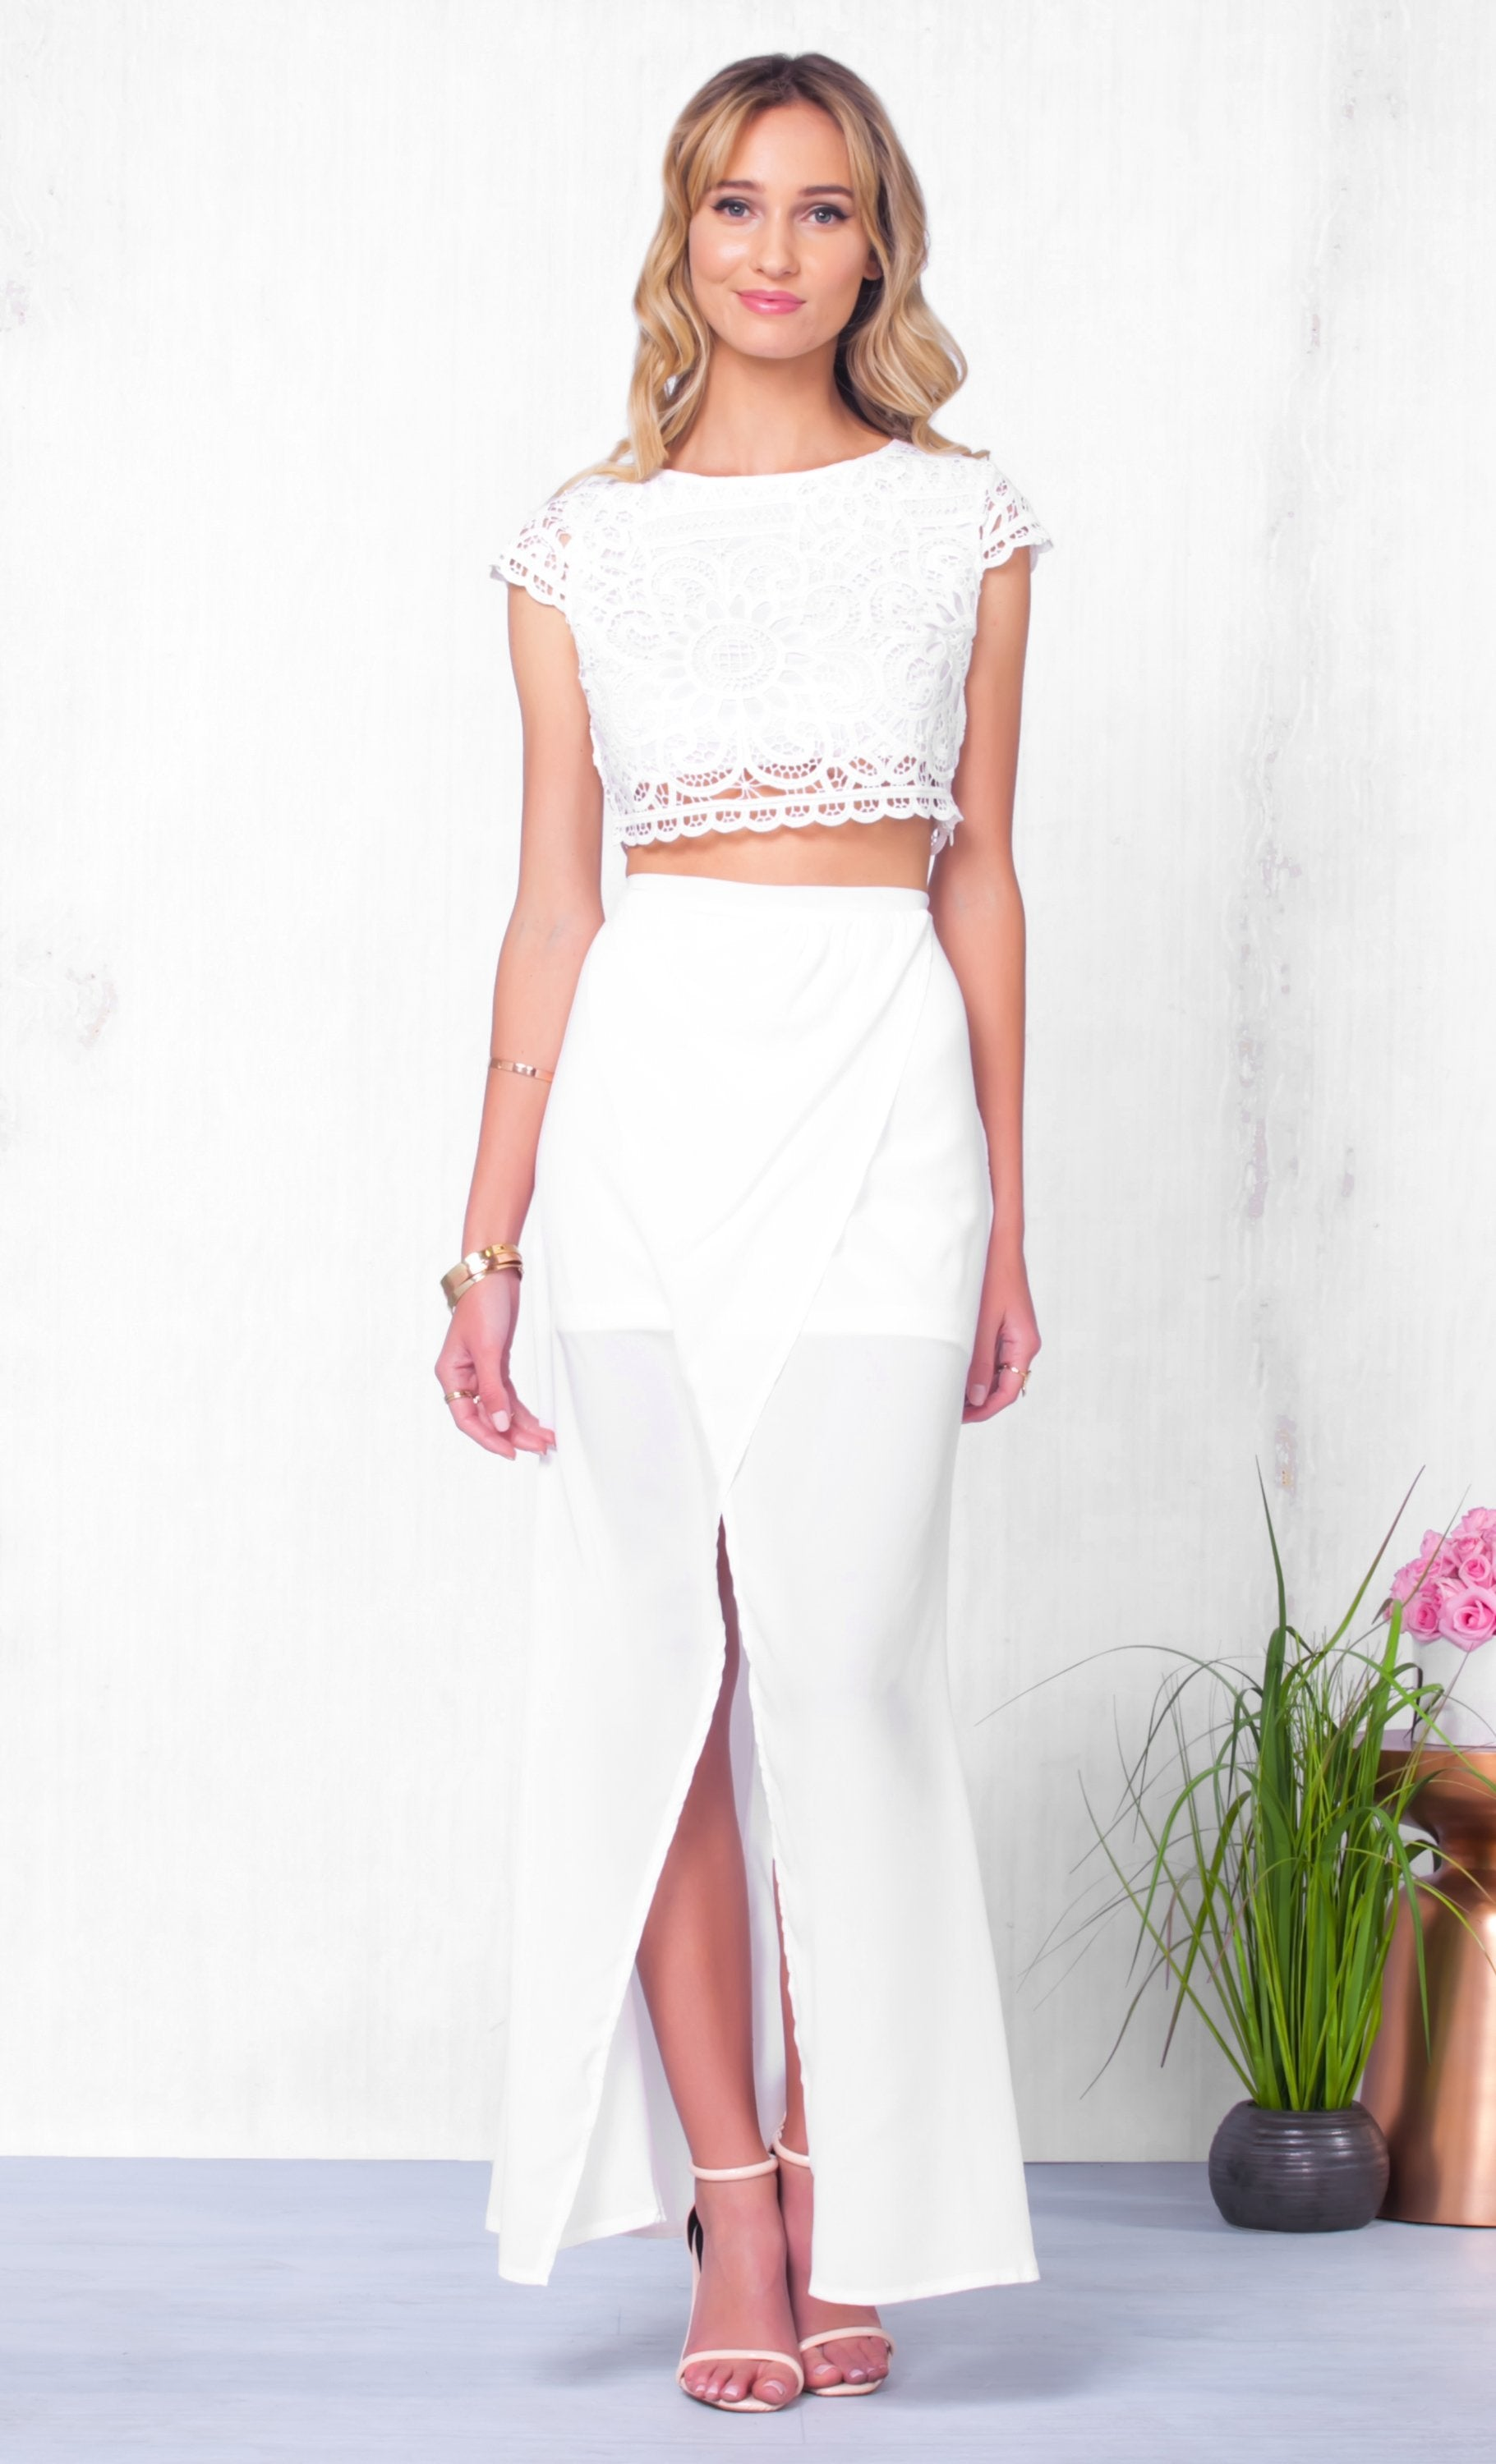 Indie XO Beach Please White Lace Two Piece Maxi Skirt Lace Crochet Crop Top - Just Ours! - Sold Out